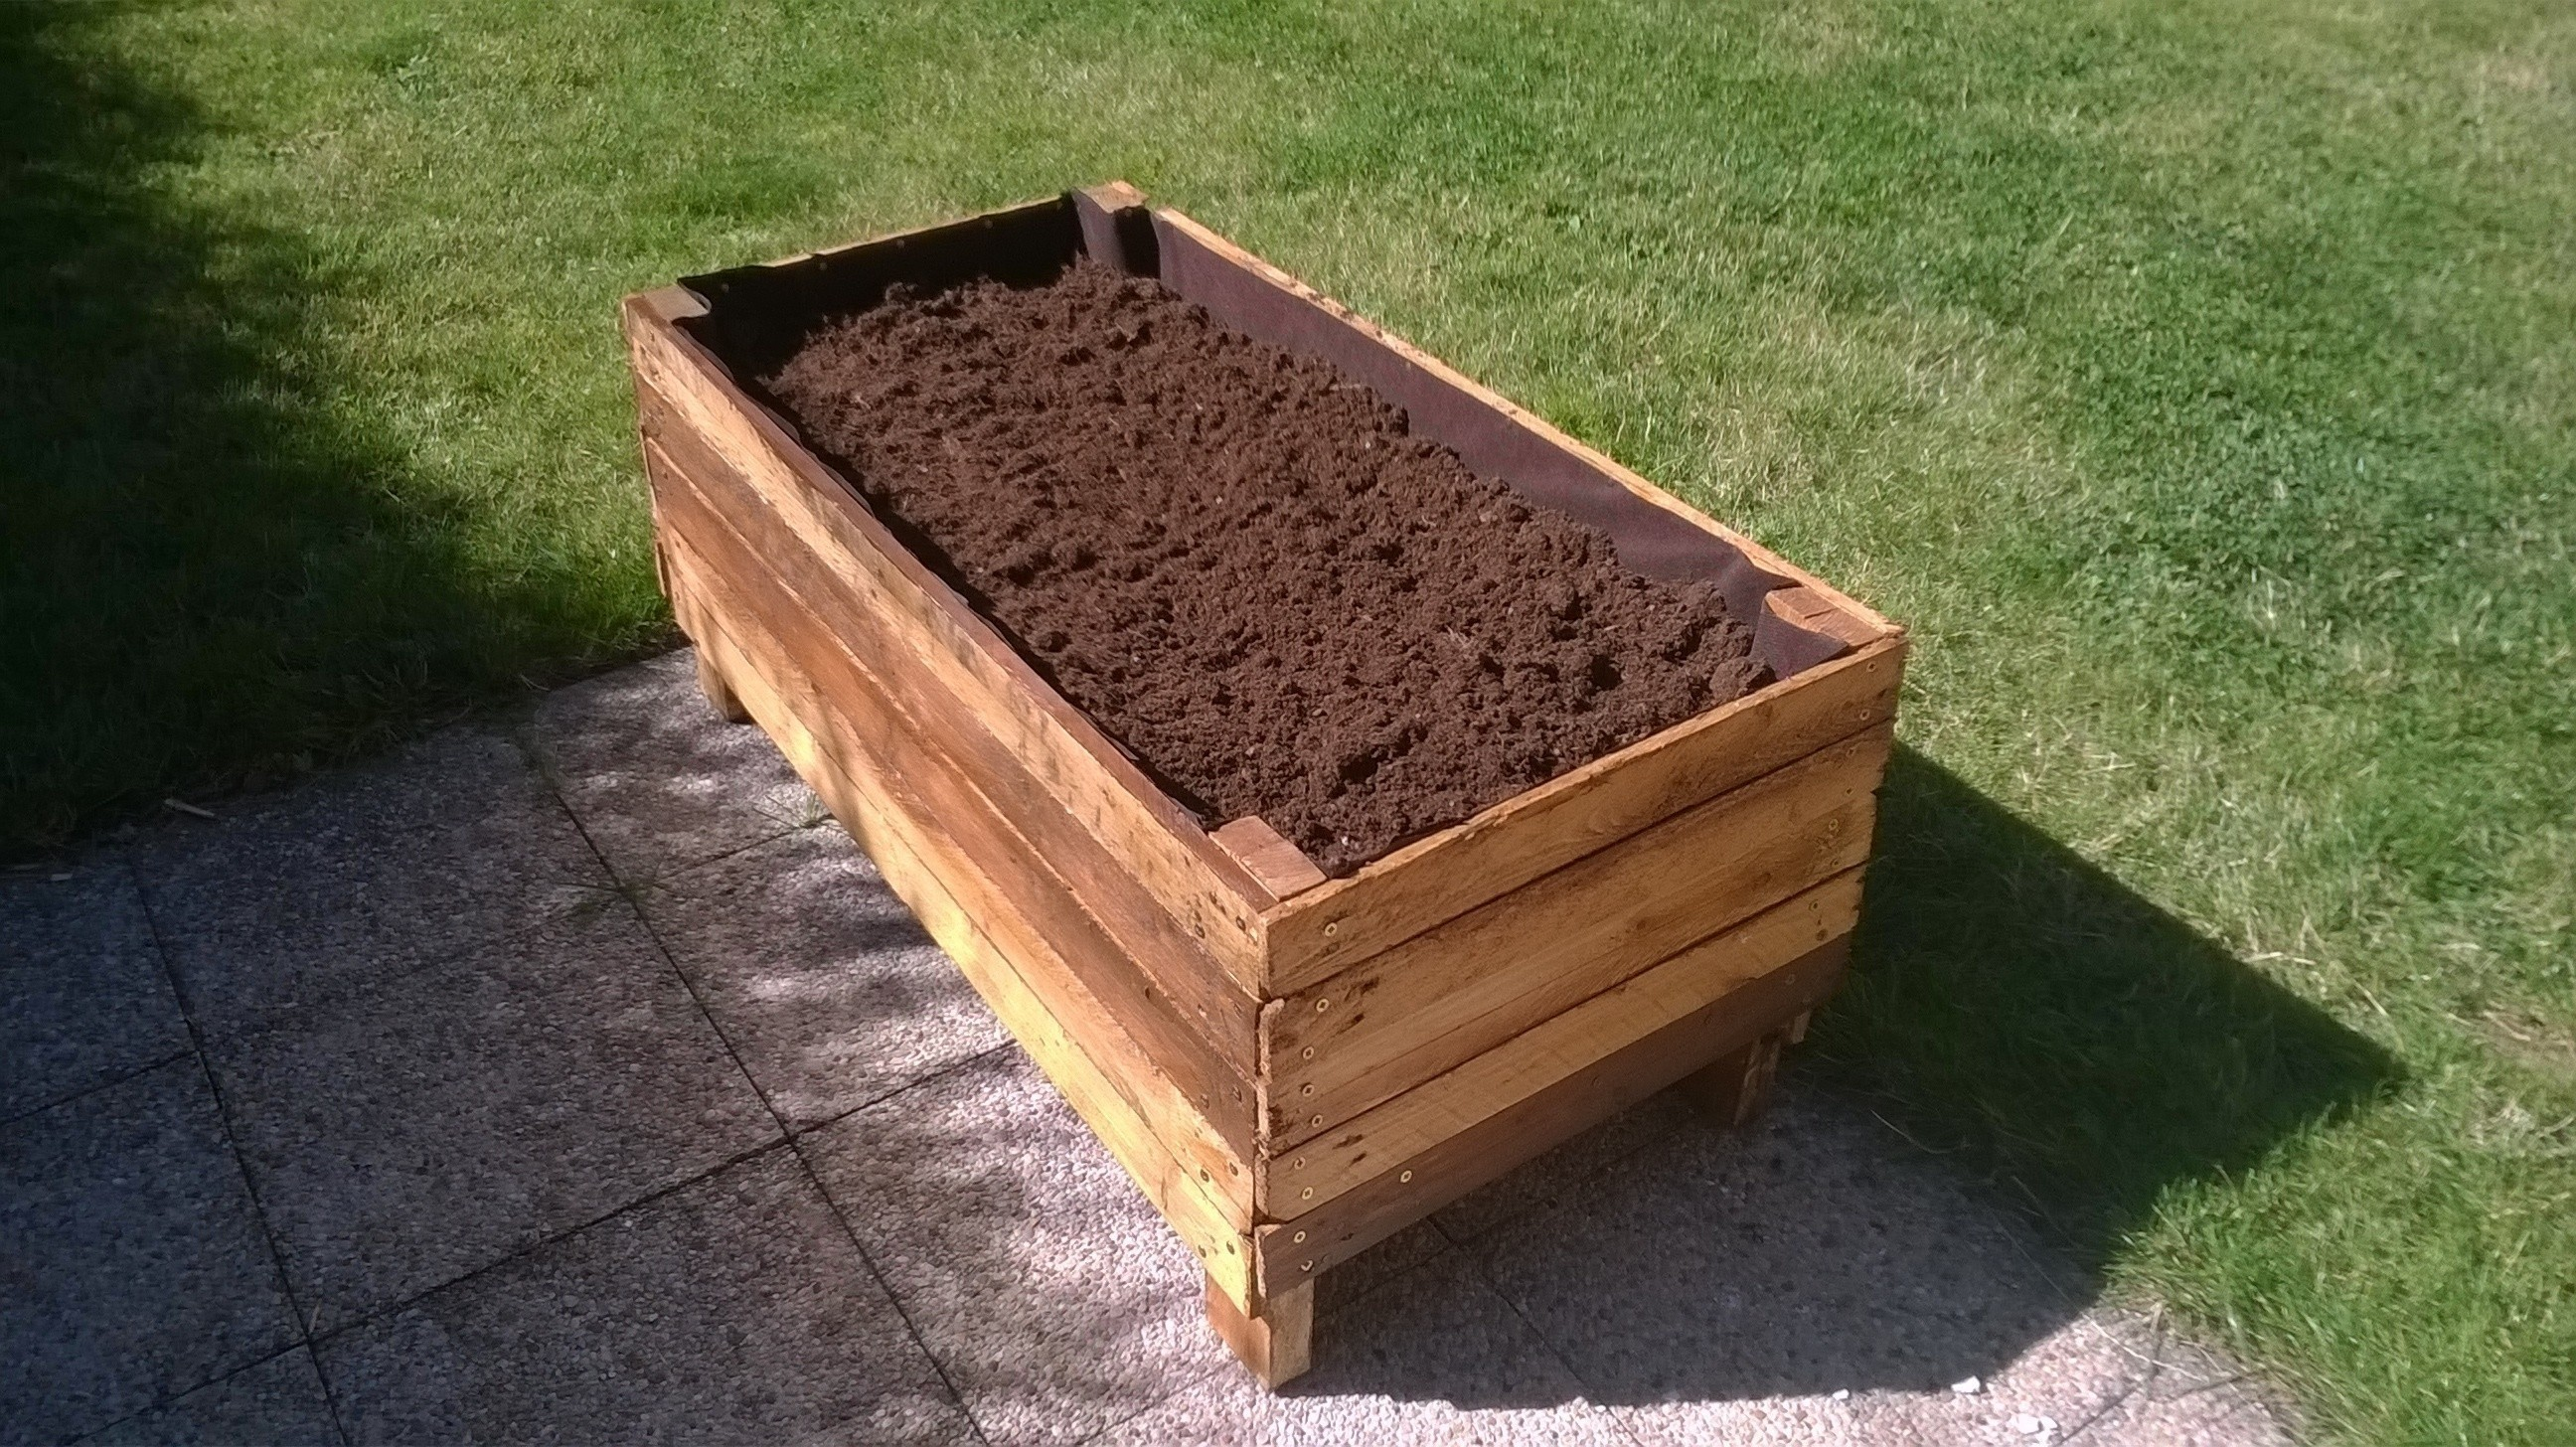 Pallet Planter 183 How To Make A Pallet Planter 183 Home Diy On Cut Out Keep